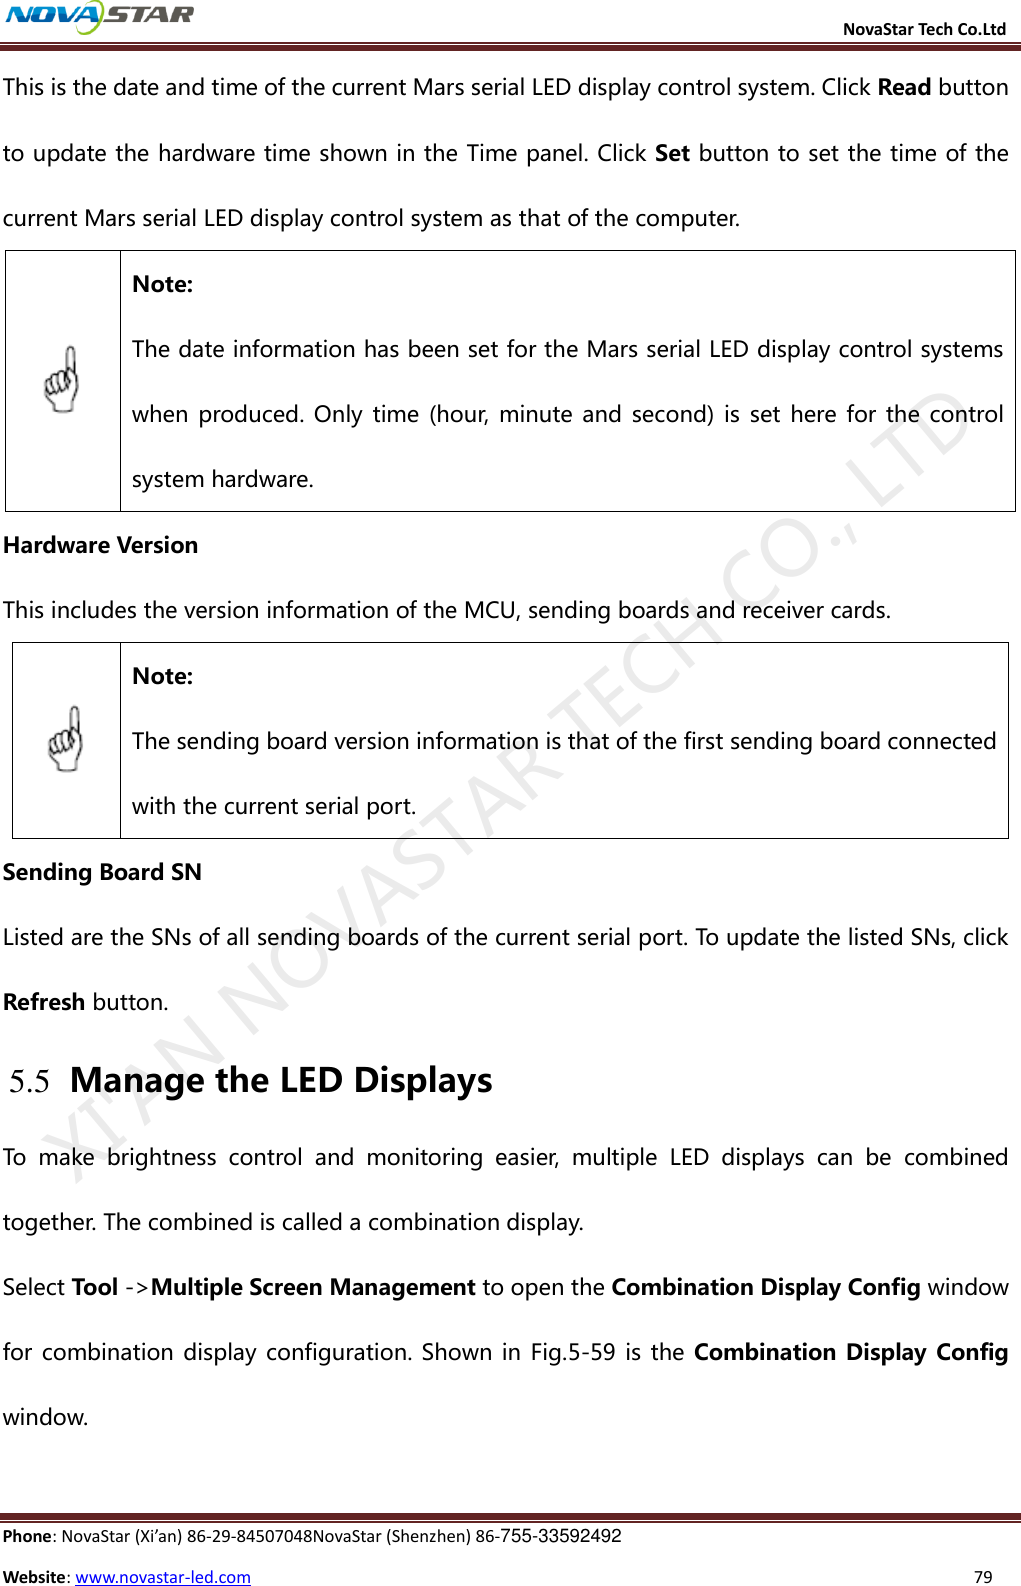 Mctrl300) Nova M3 Led Display Control System User Manual V4 2 5